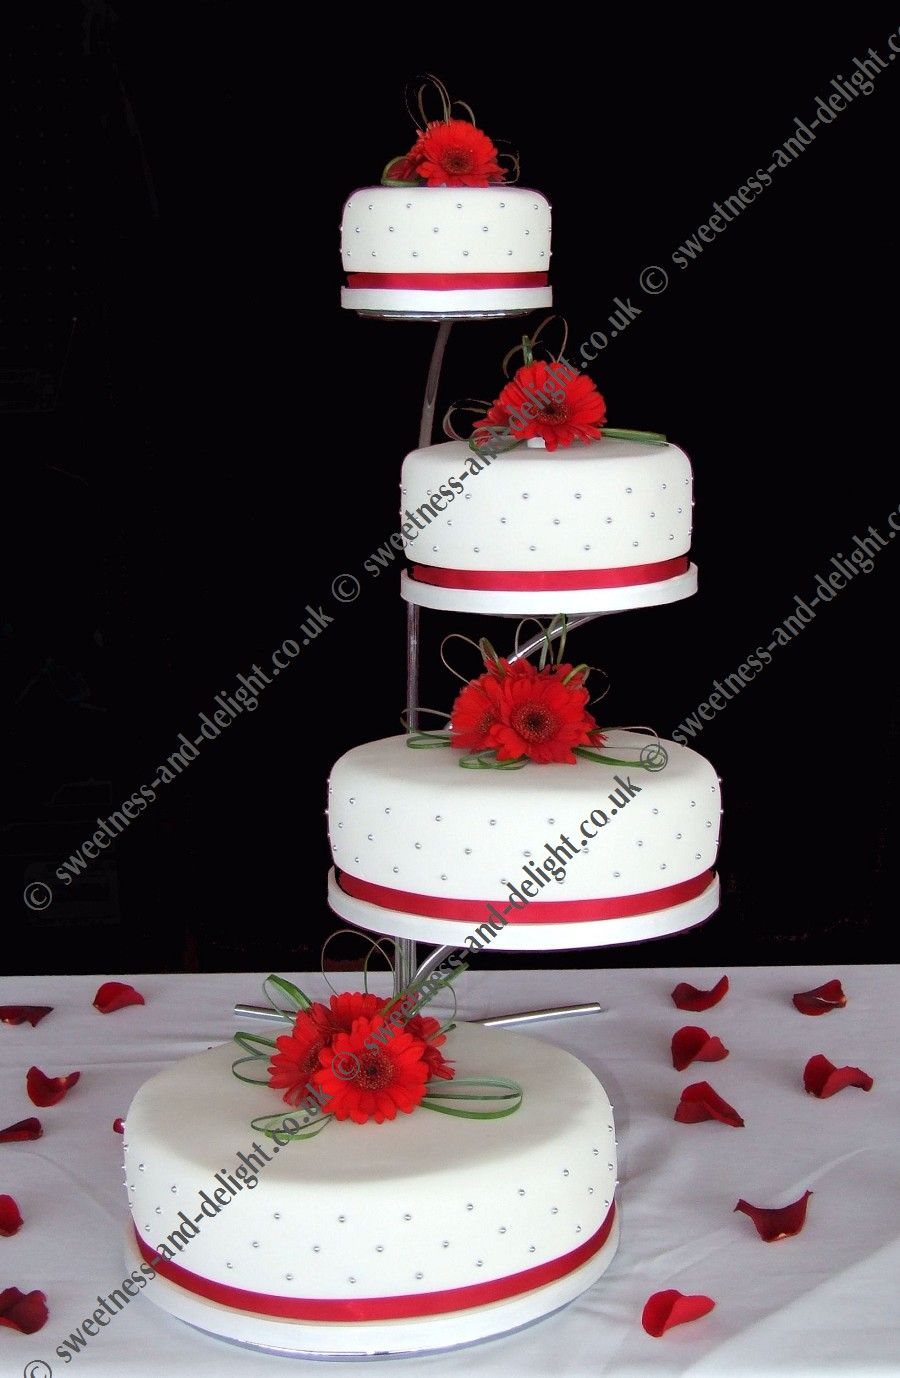 wedding cake stands Wedding and Celebration Cakes in Milton Keynes Buckinghamshire Cake Stand Hire